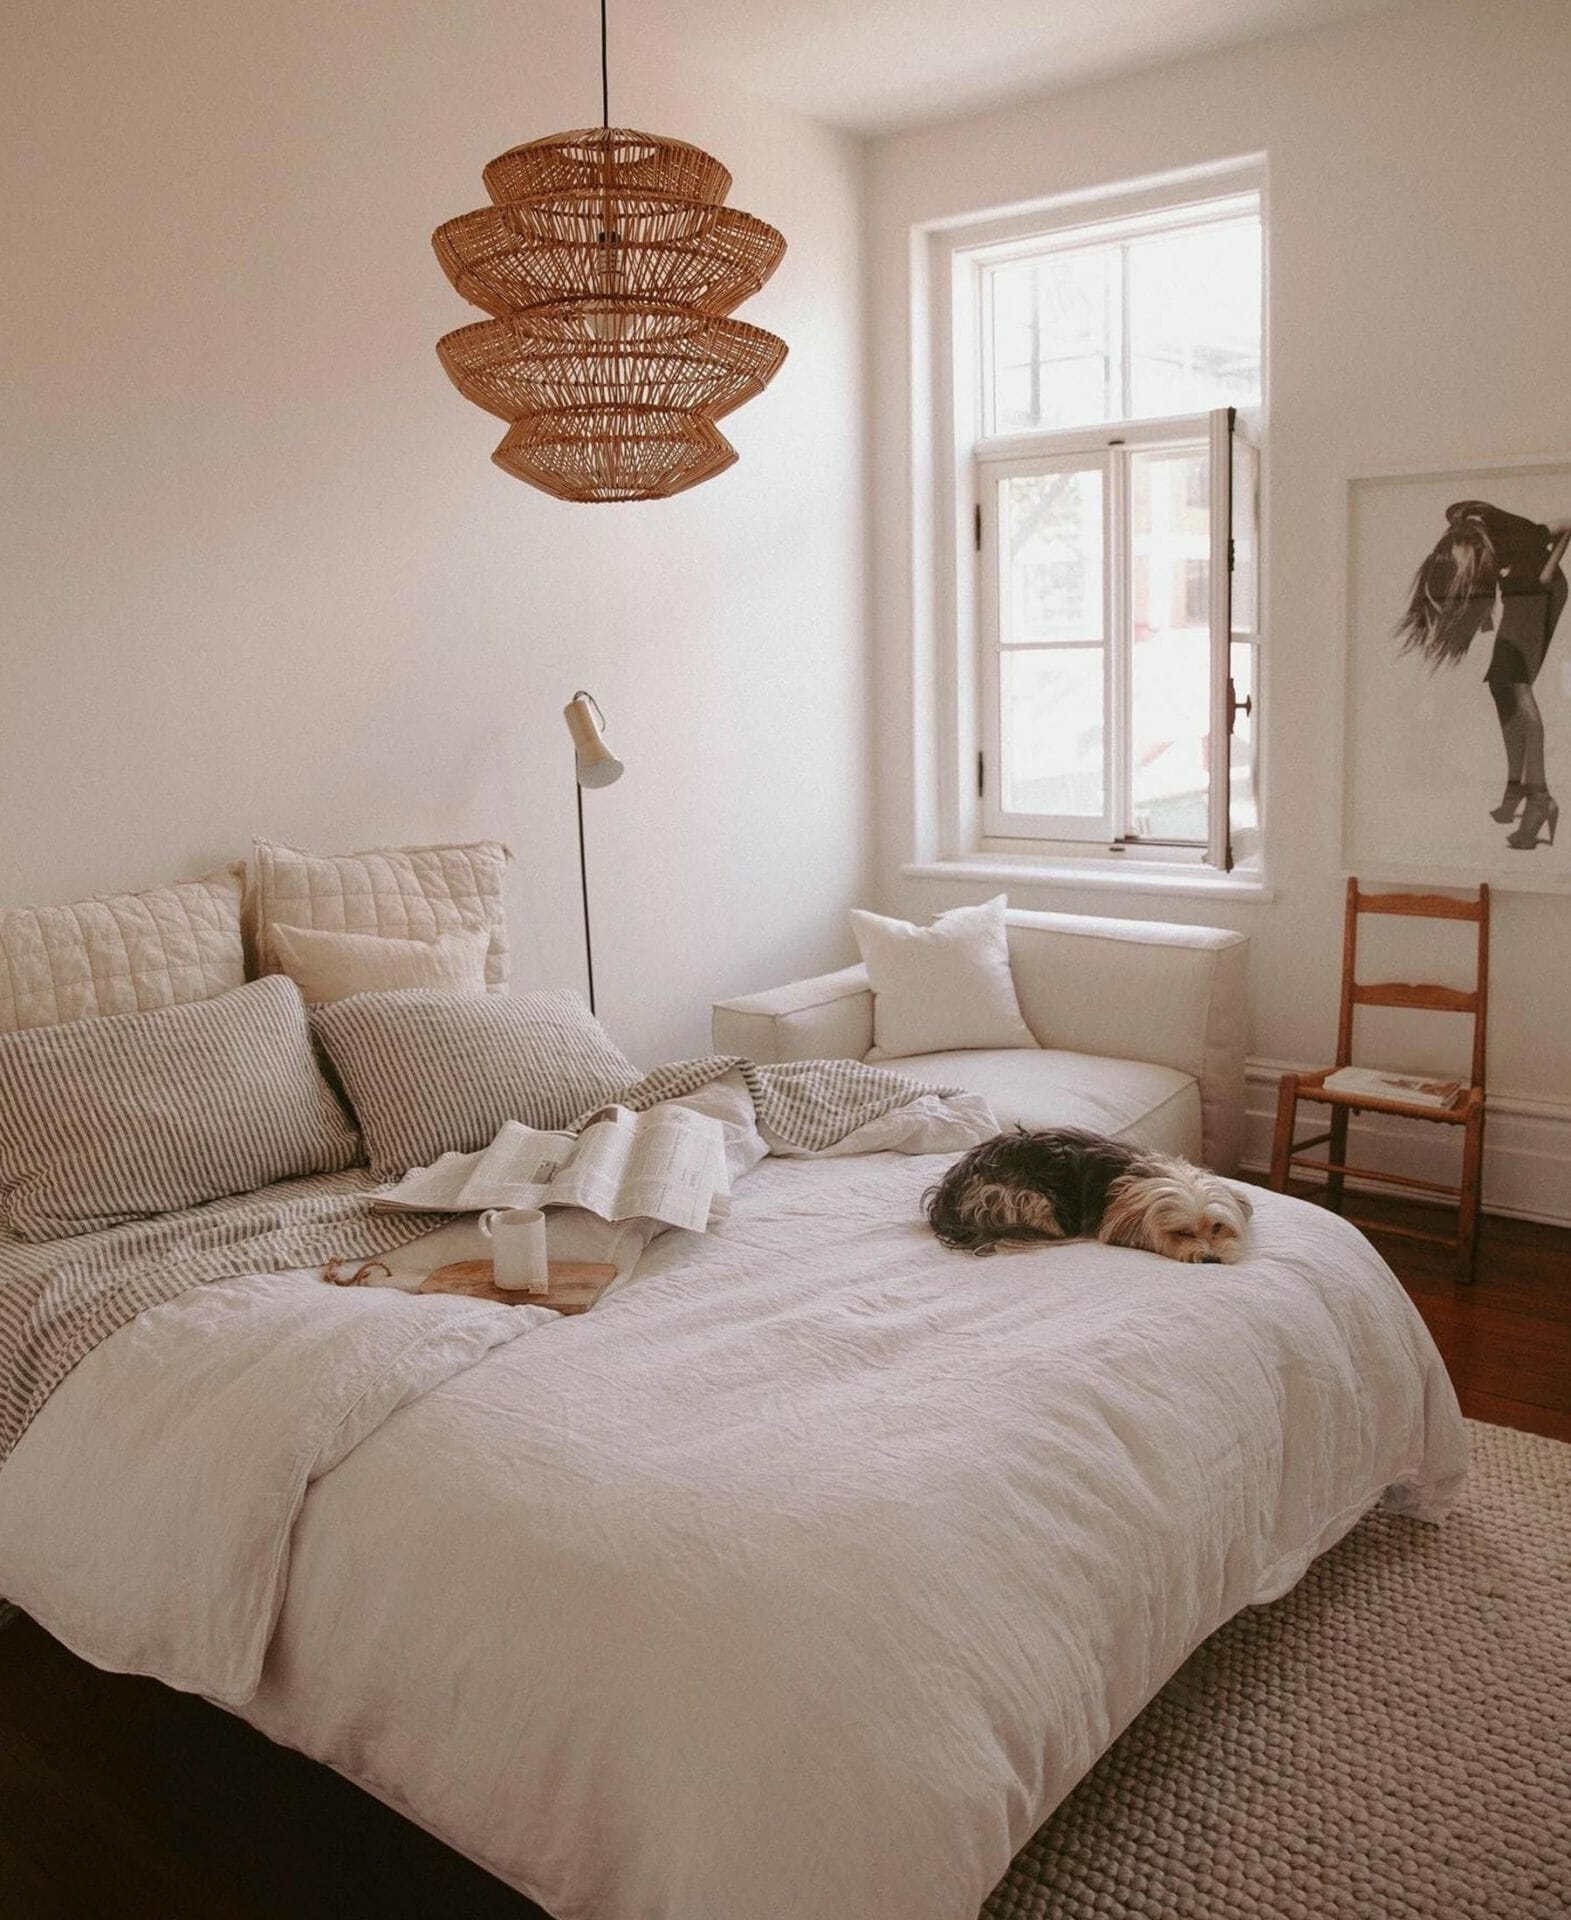 Chloe Cleroux uses the Article Suru Pendant Light in her calm bedroom